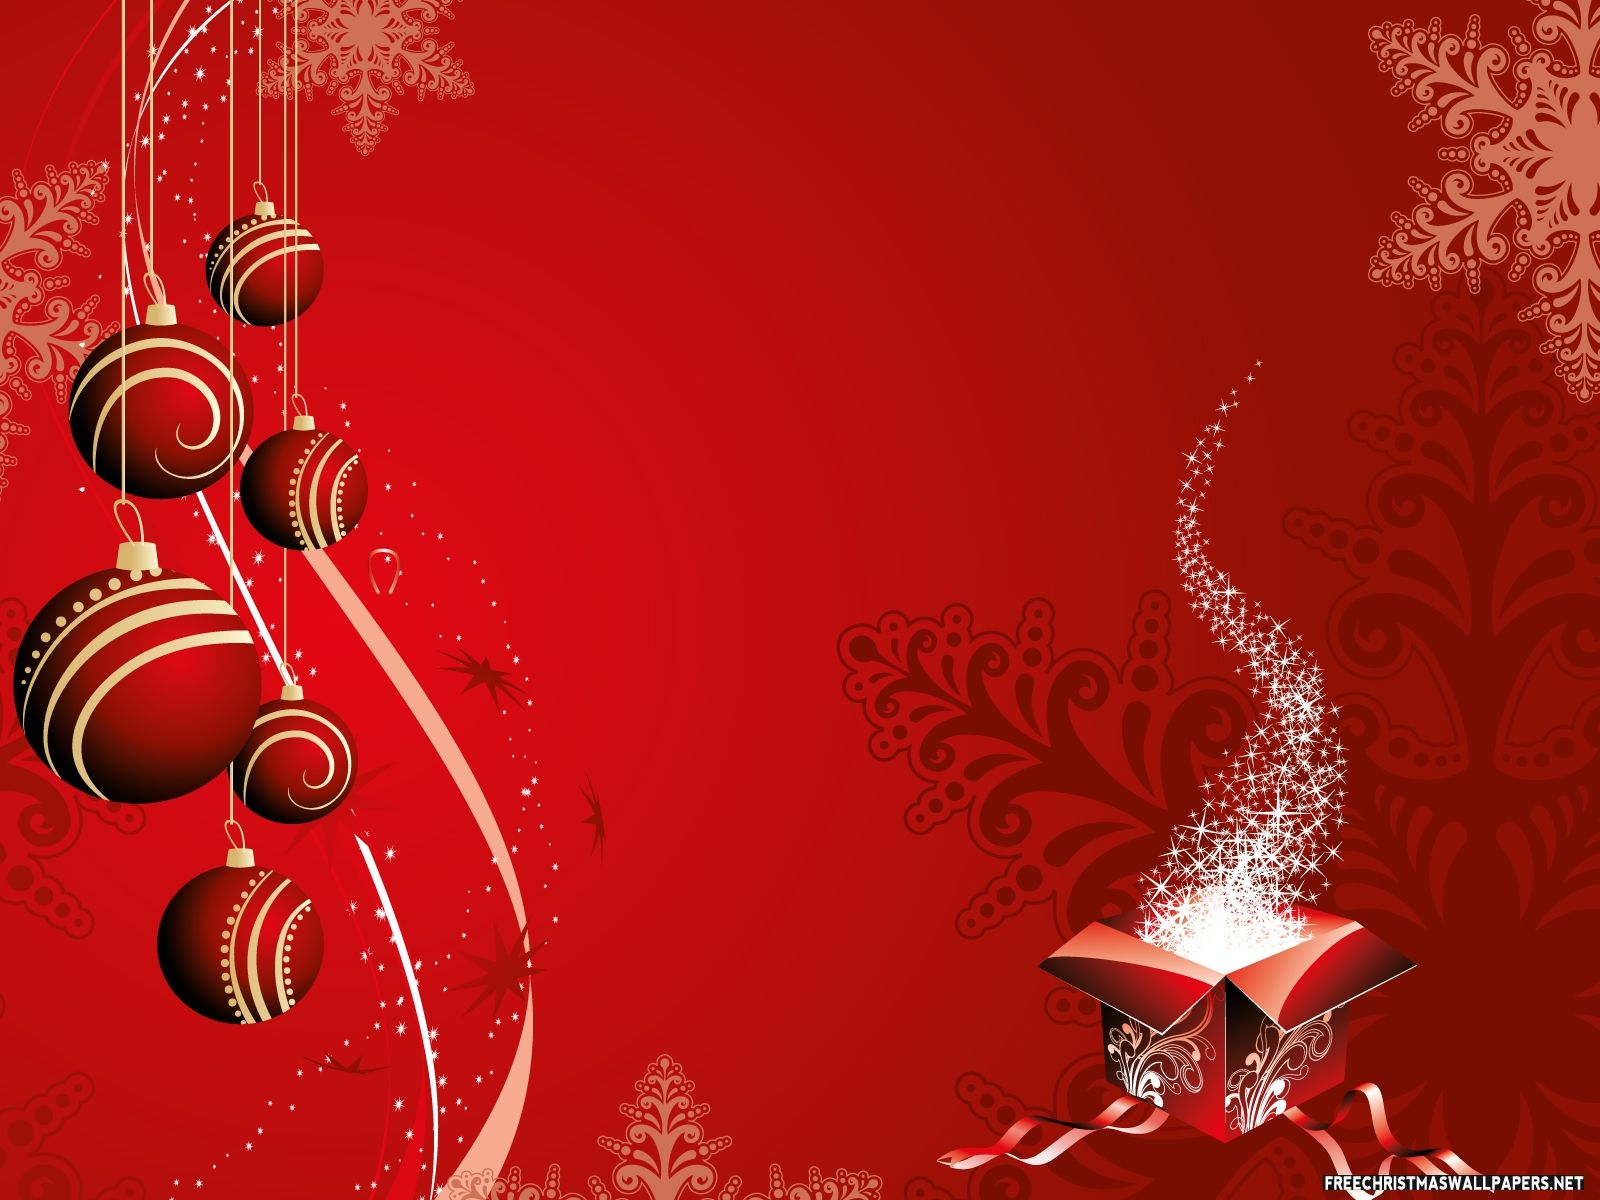 Unique Christmas Display Christmas wallpaper free, Free